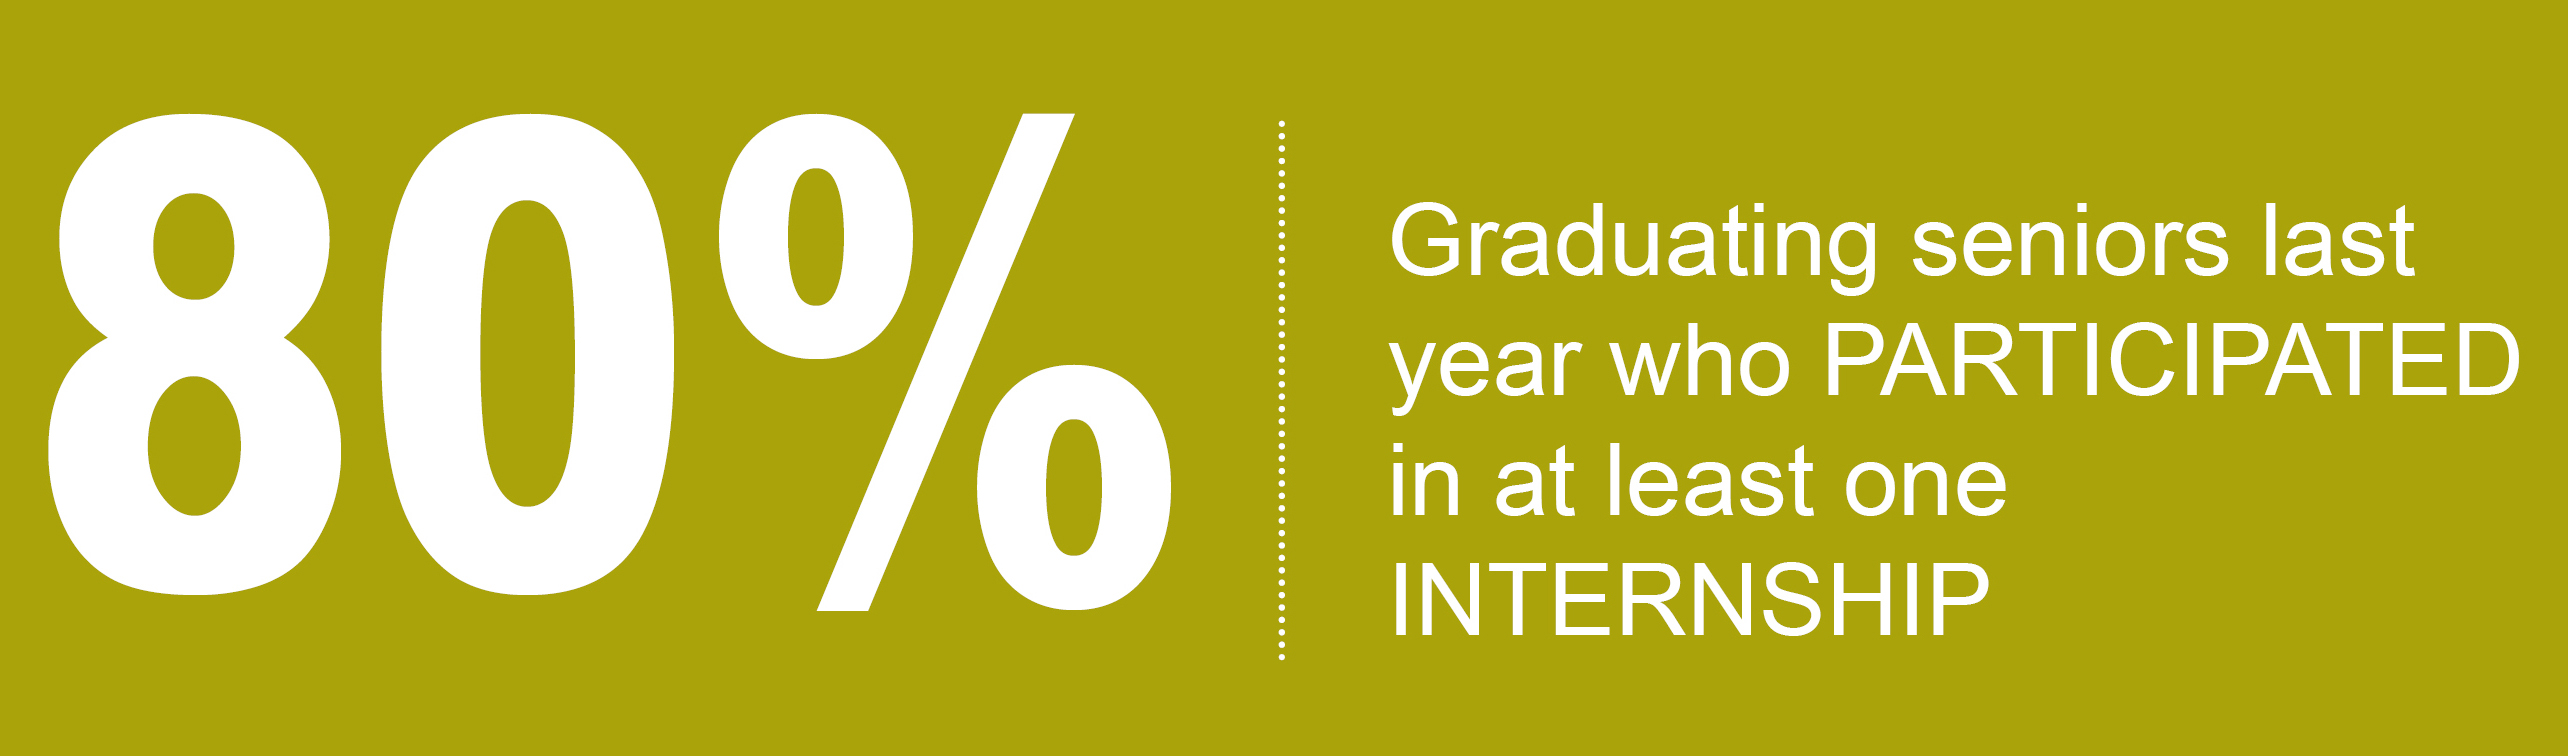 80%: Graduating seniors last year who participated in at least one internship